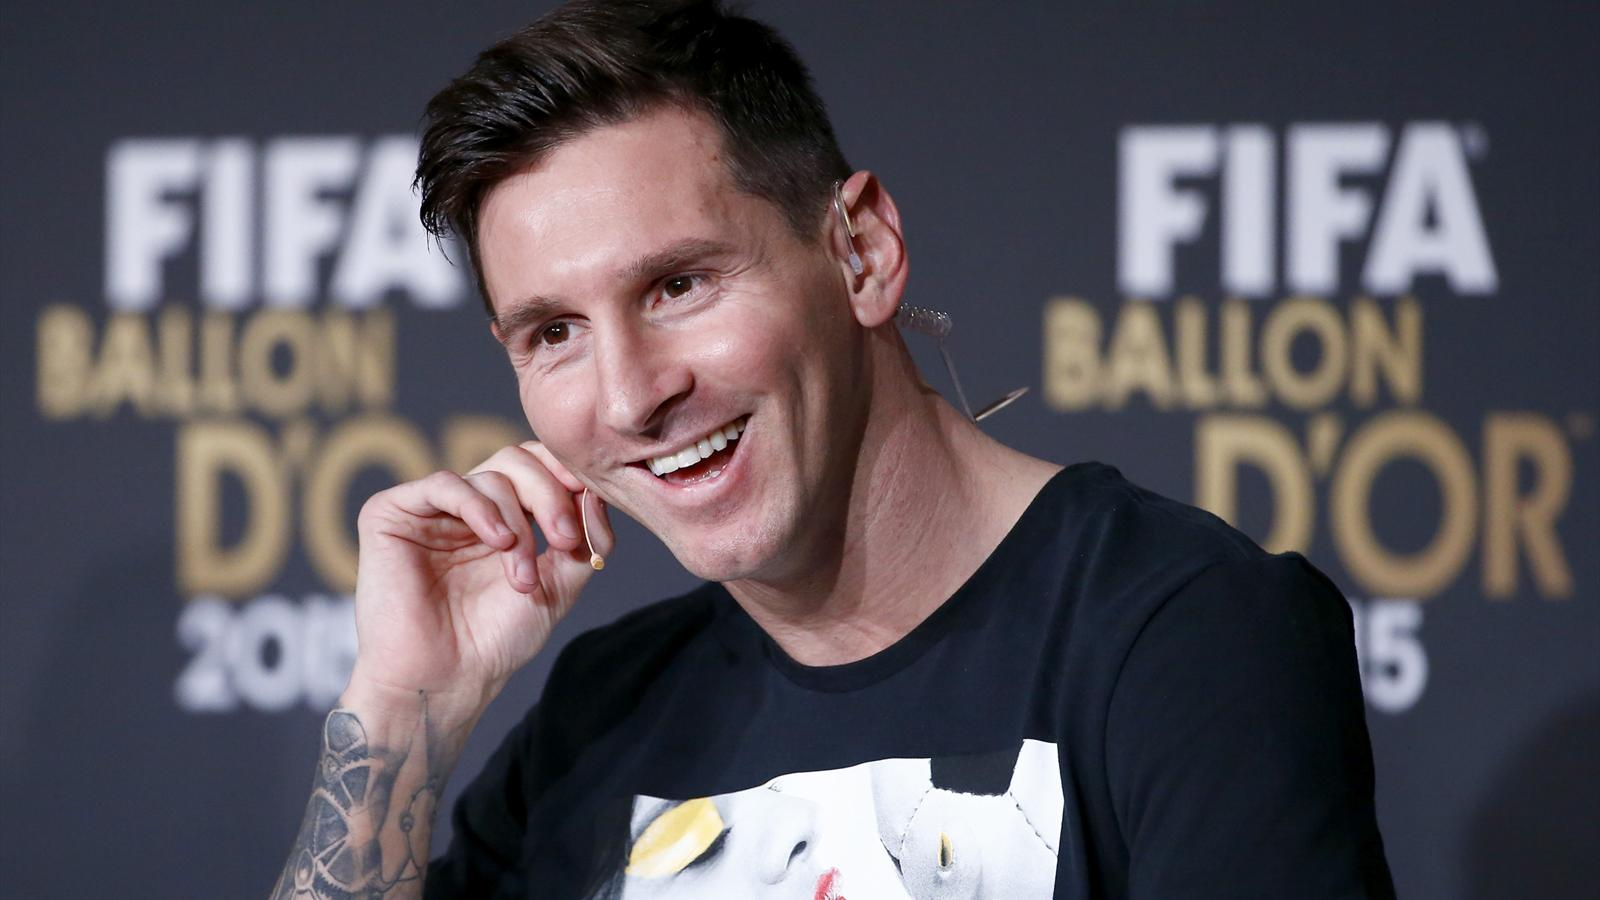 Lionel Messi Frank Rijkaard was most important coach of my career